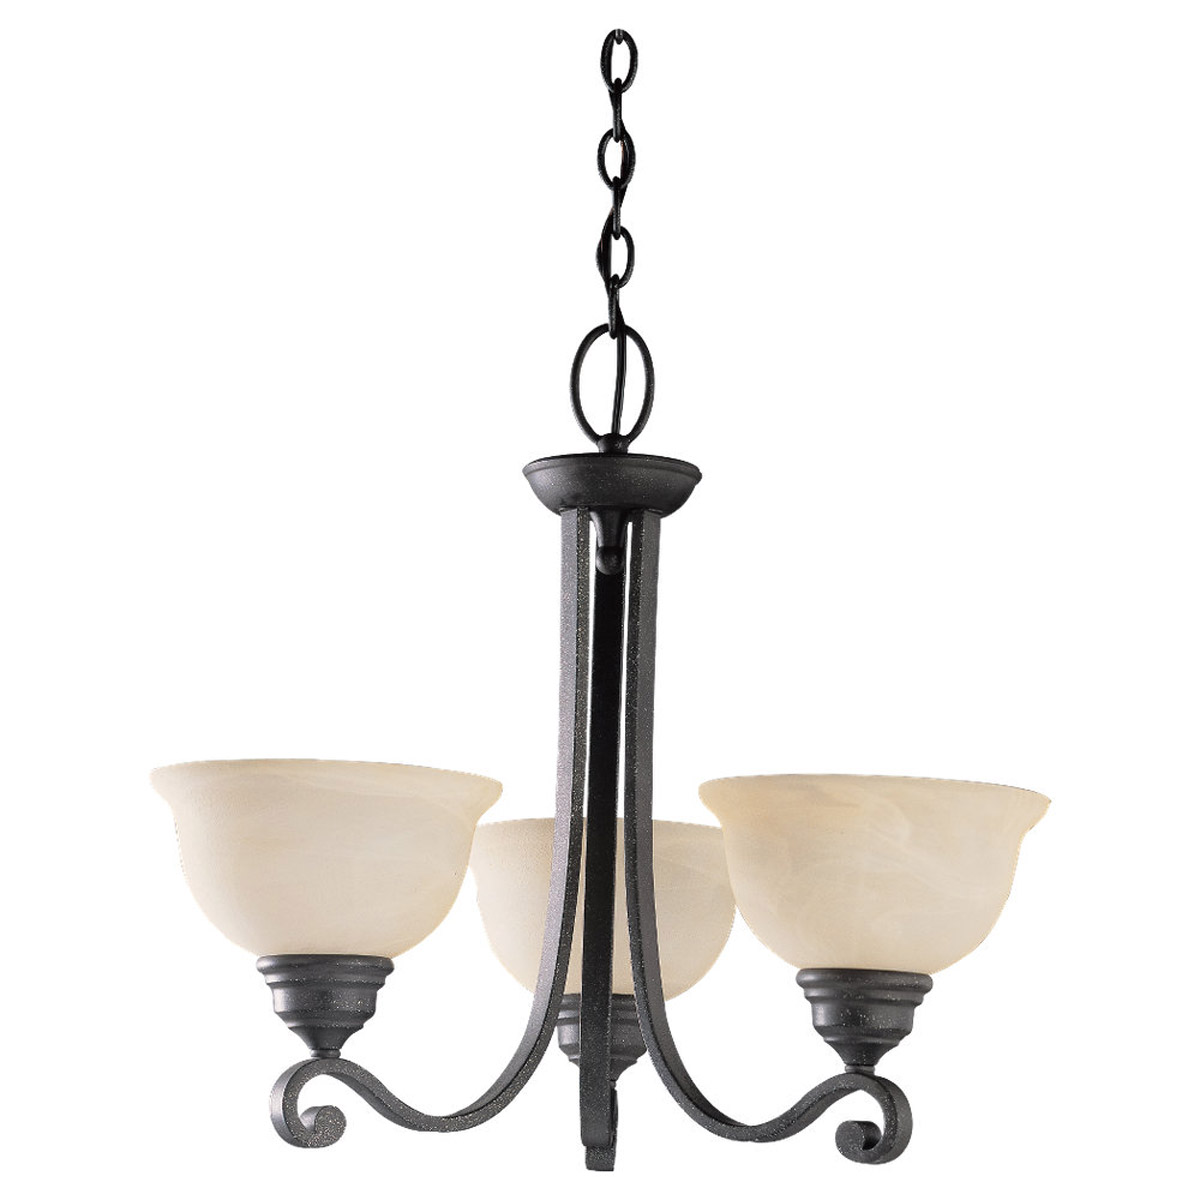 Sea Gull Lighting Serenity 3 Light Chandelier in Weathered Iron 31190-07